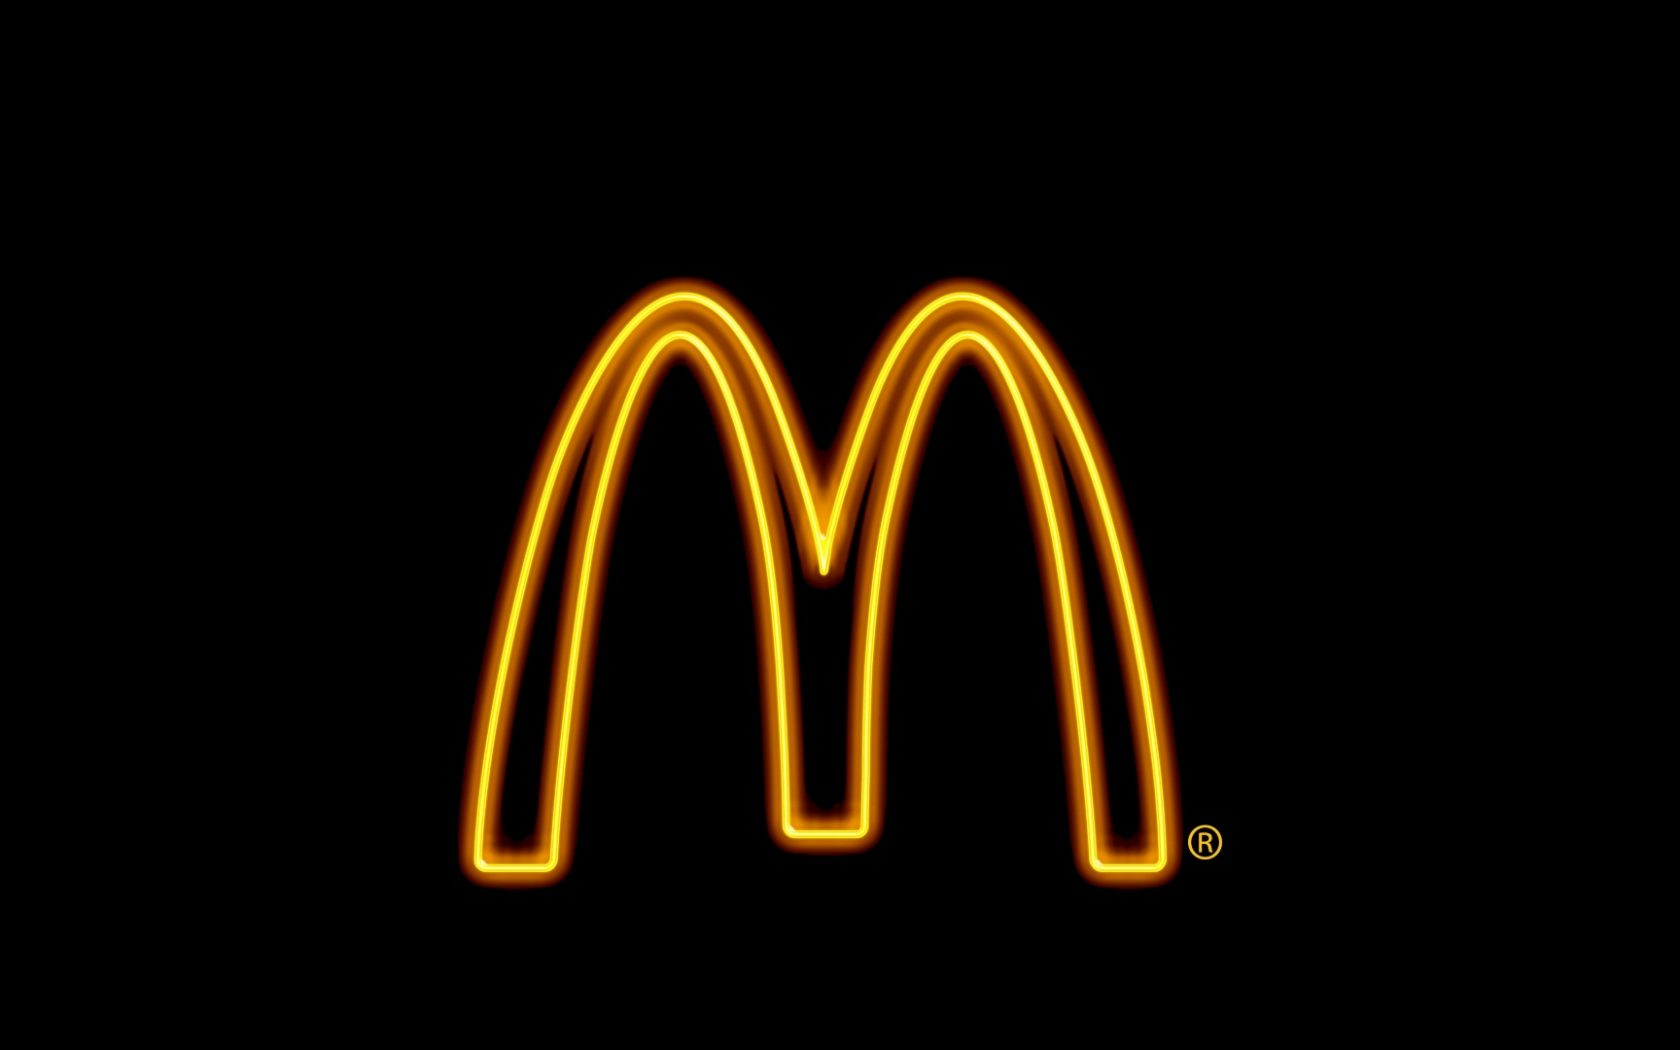 Mcdonalds Logo Fast Food Chain Hd Wallpapers Hd Wallpapers